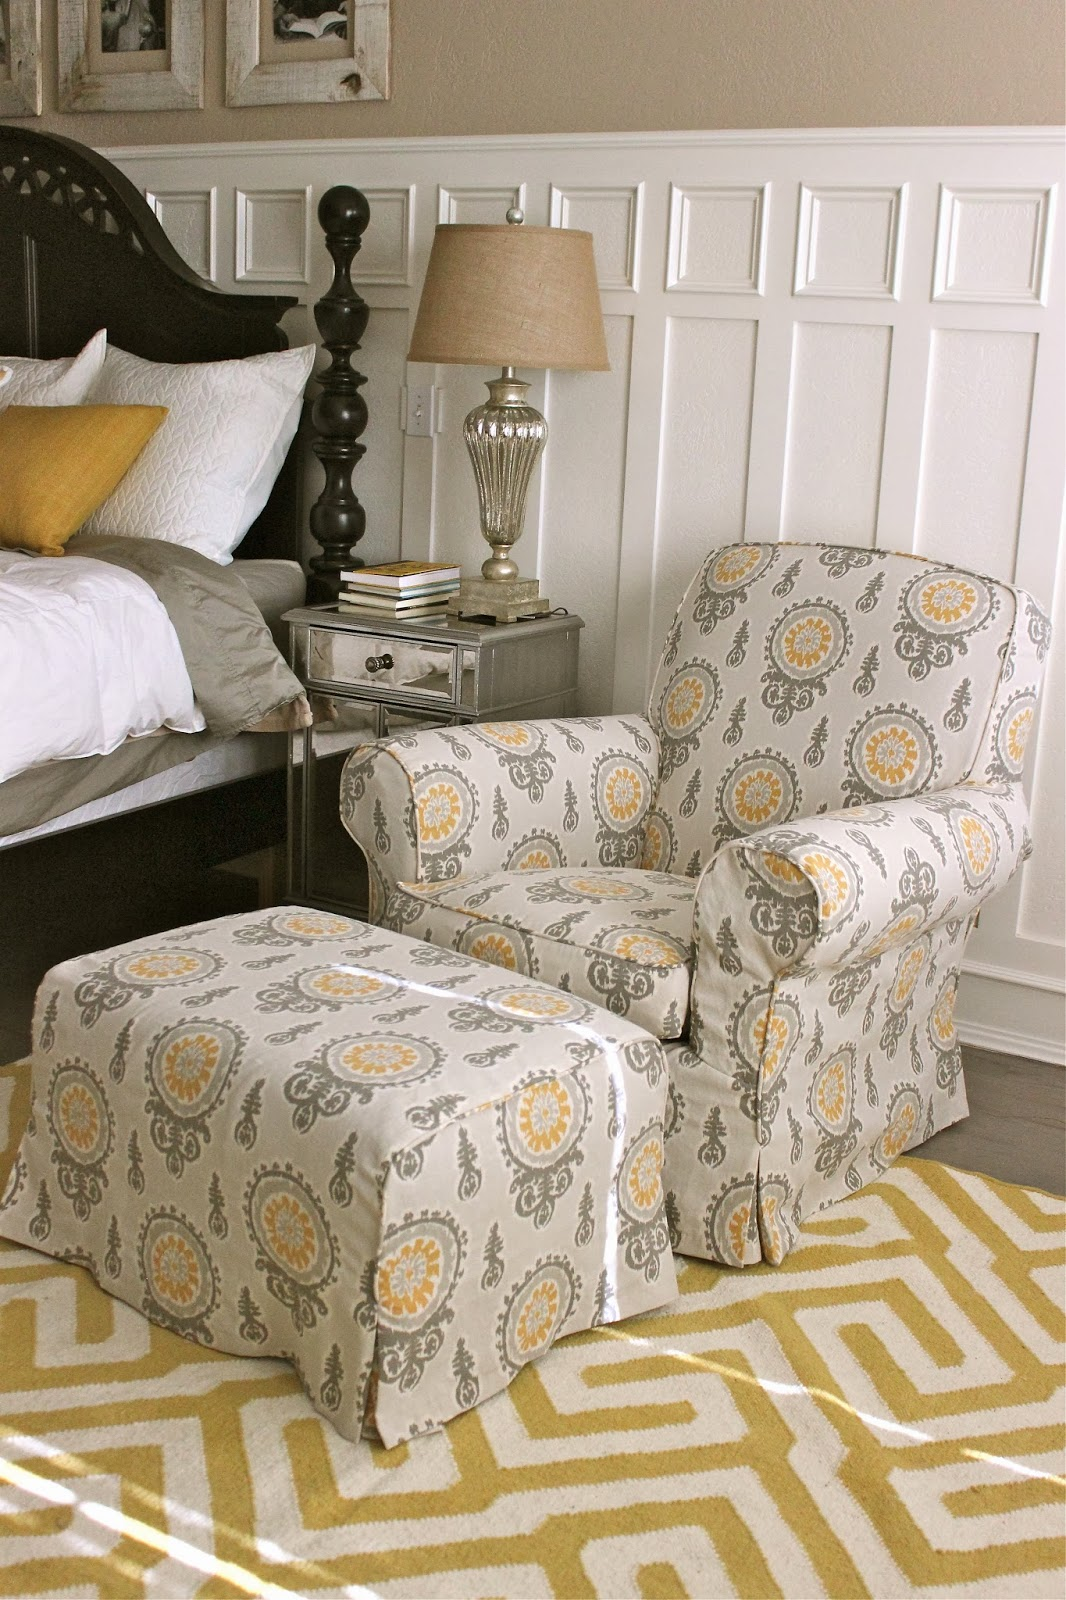 Slipcover For Oversized Chair And Ottoman Custom Slipcovers By Shelley Gray Yellow Bedroom Chair